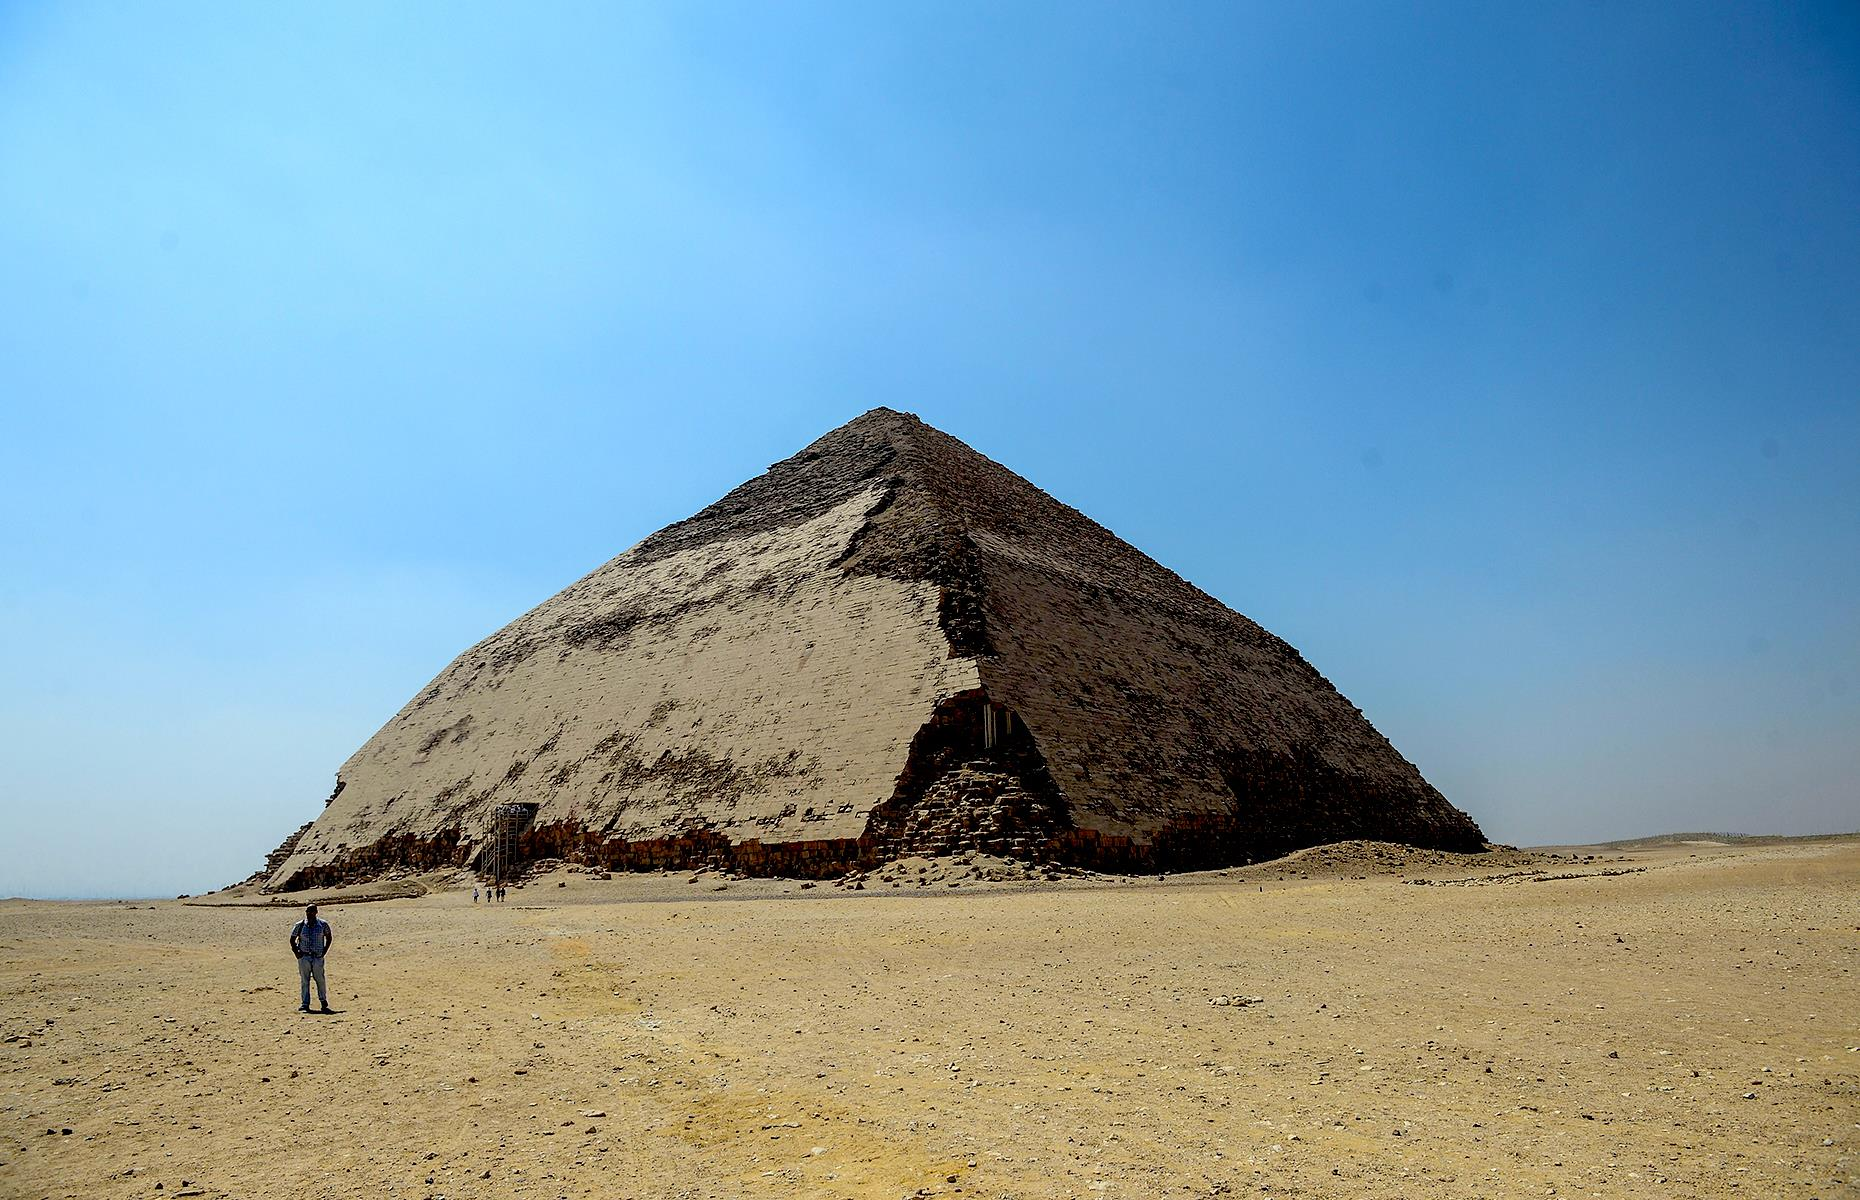 Slide 4 of 50: It might not be the most famous of Egypt's pyramids, but this striking structure in Dahshur still has secrets aplenty. Reopened to the public in 2019 for the first time since the 1960s, the Bent Pyramid (so named for its curious shape) sits around 25 miles (40km) south of capital Cairo. It's thought to be around 4,600 years old, dating back to 2,600 BC, when it was built for the pharaoh Sneferu. But despite its many millennia, its riches are only just being discovered.